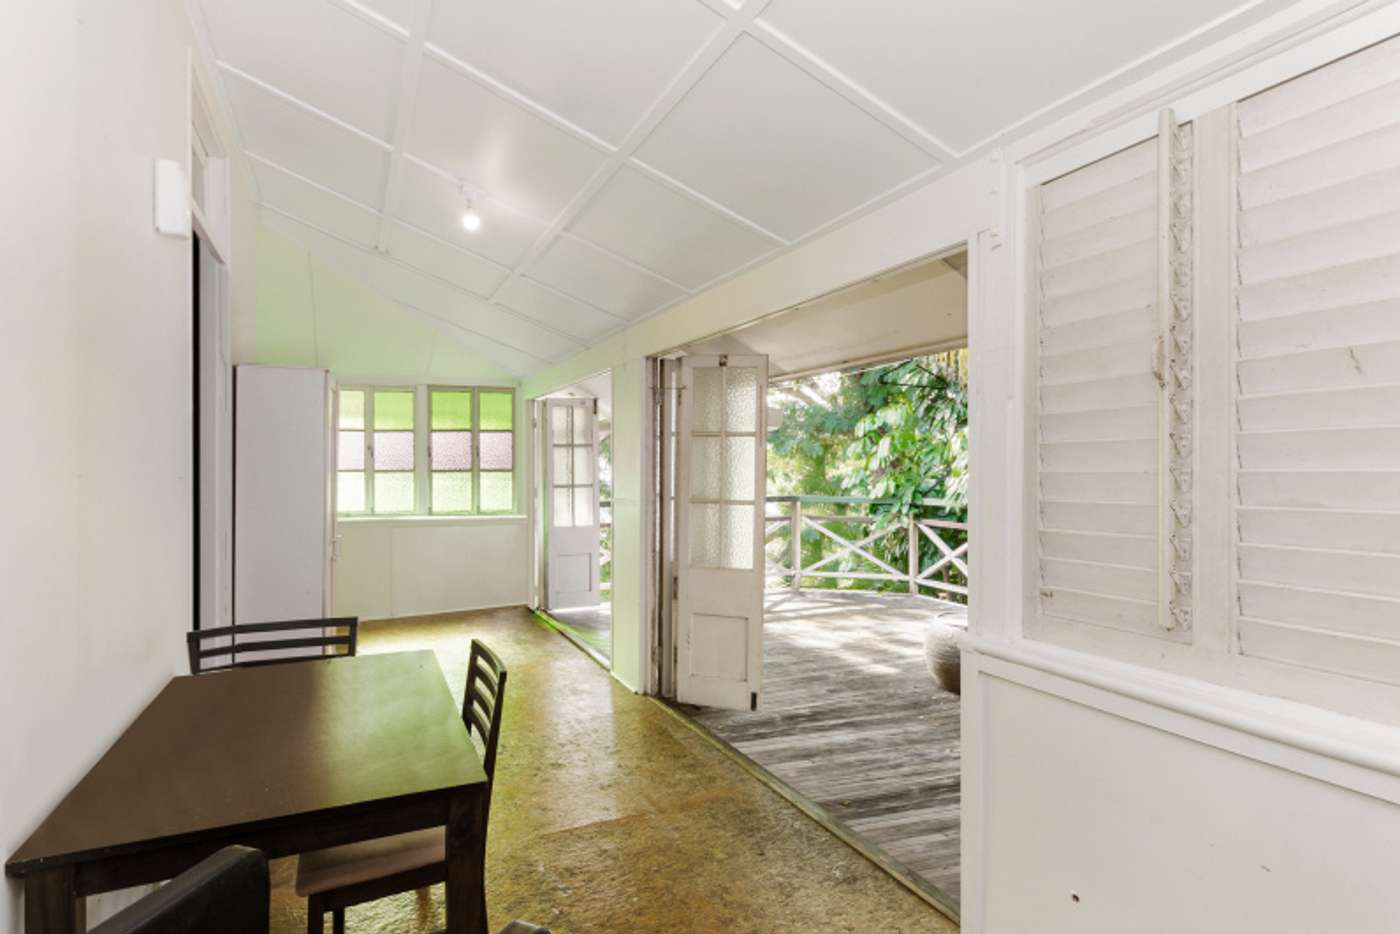 Sixth view of Homely blockOfUnits listing, 1 Fryer Street, North Ward QLD 4810